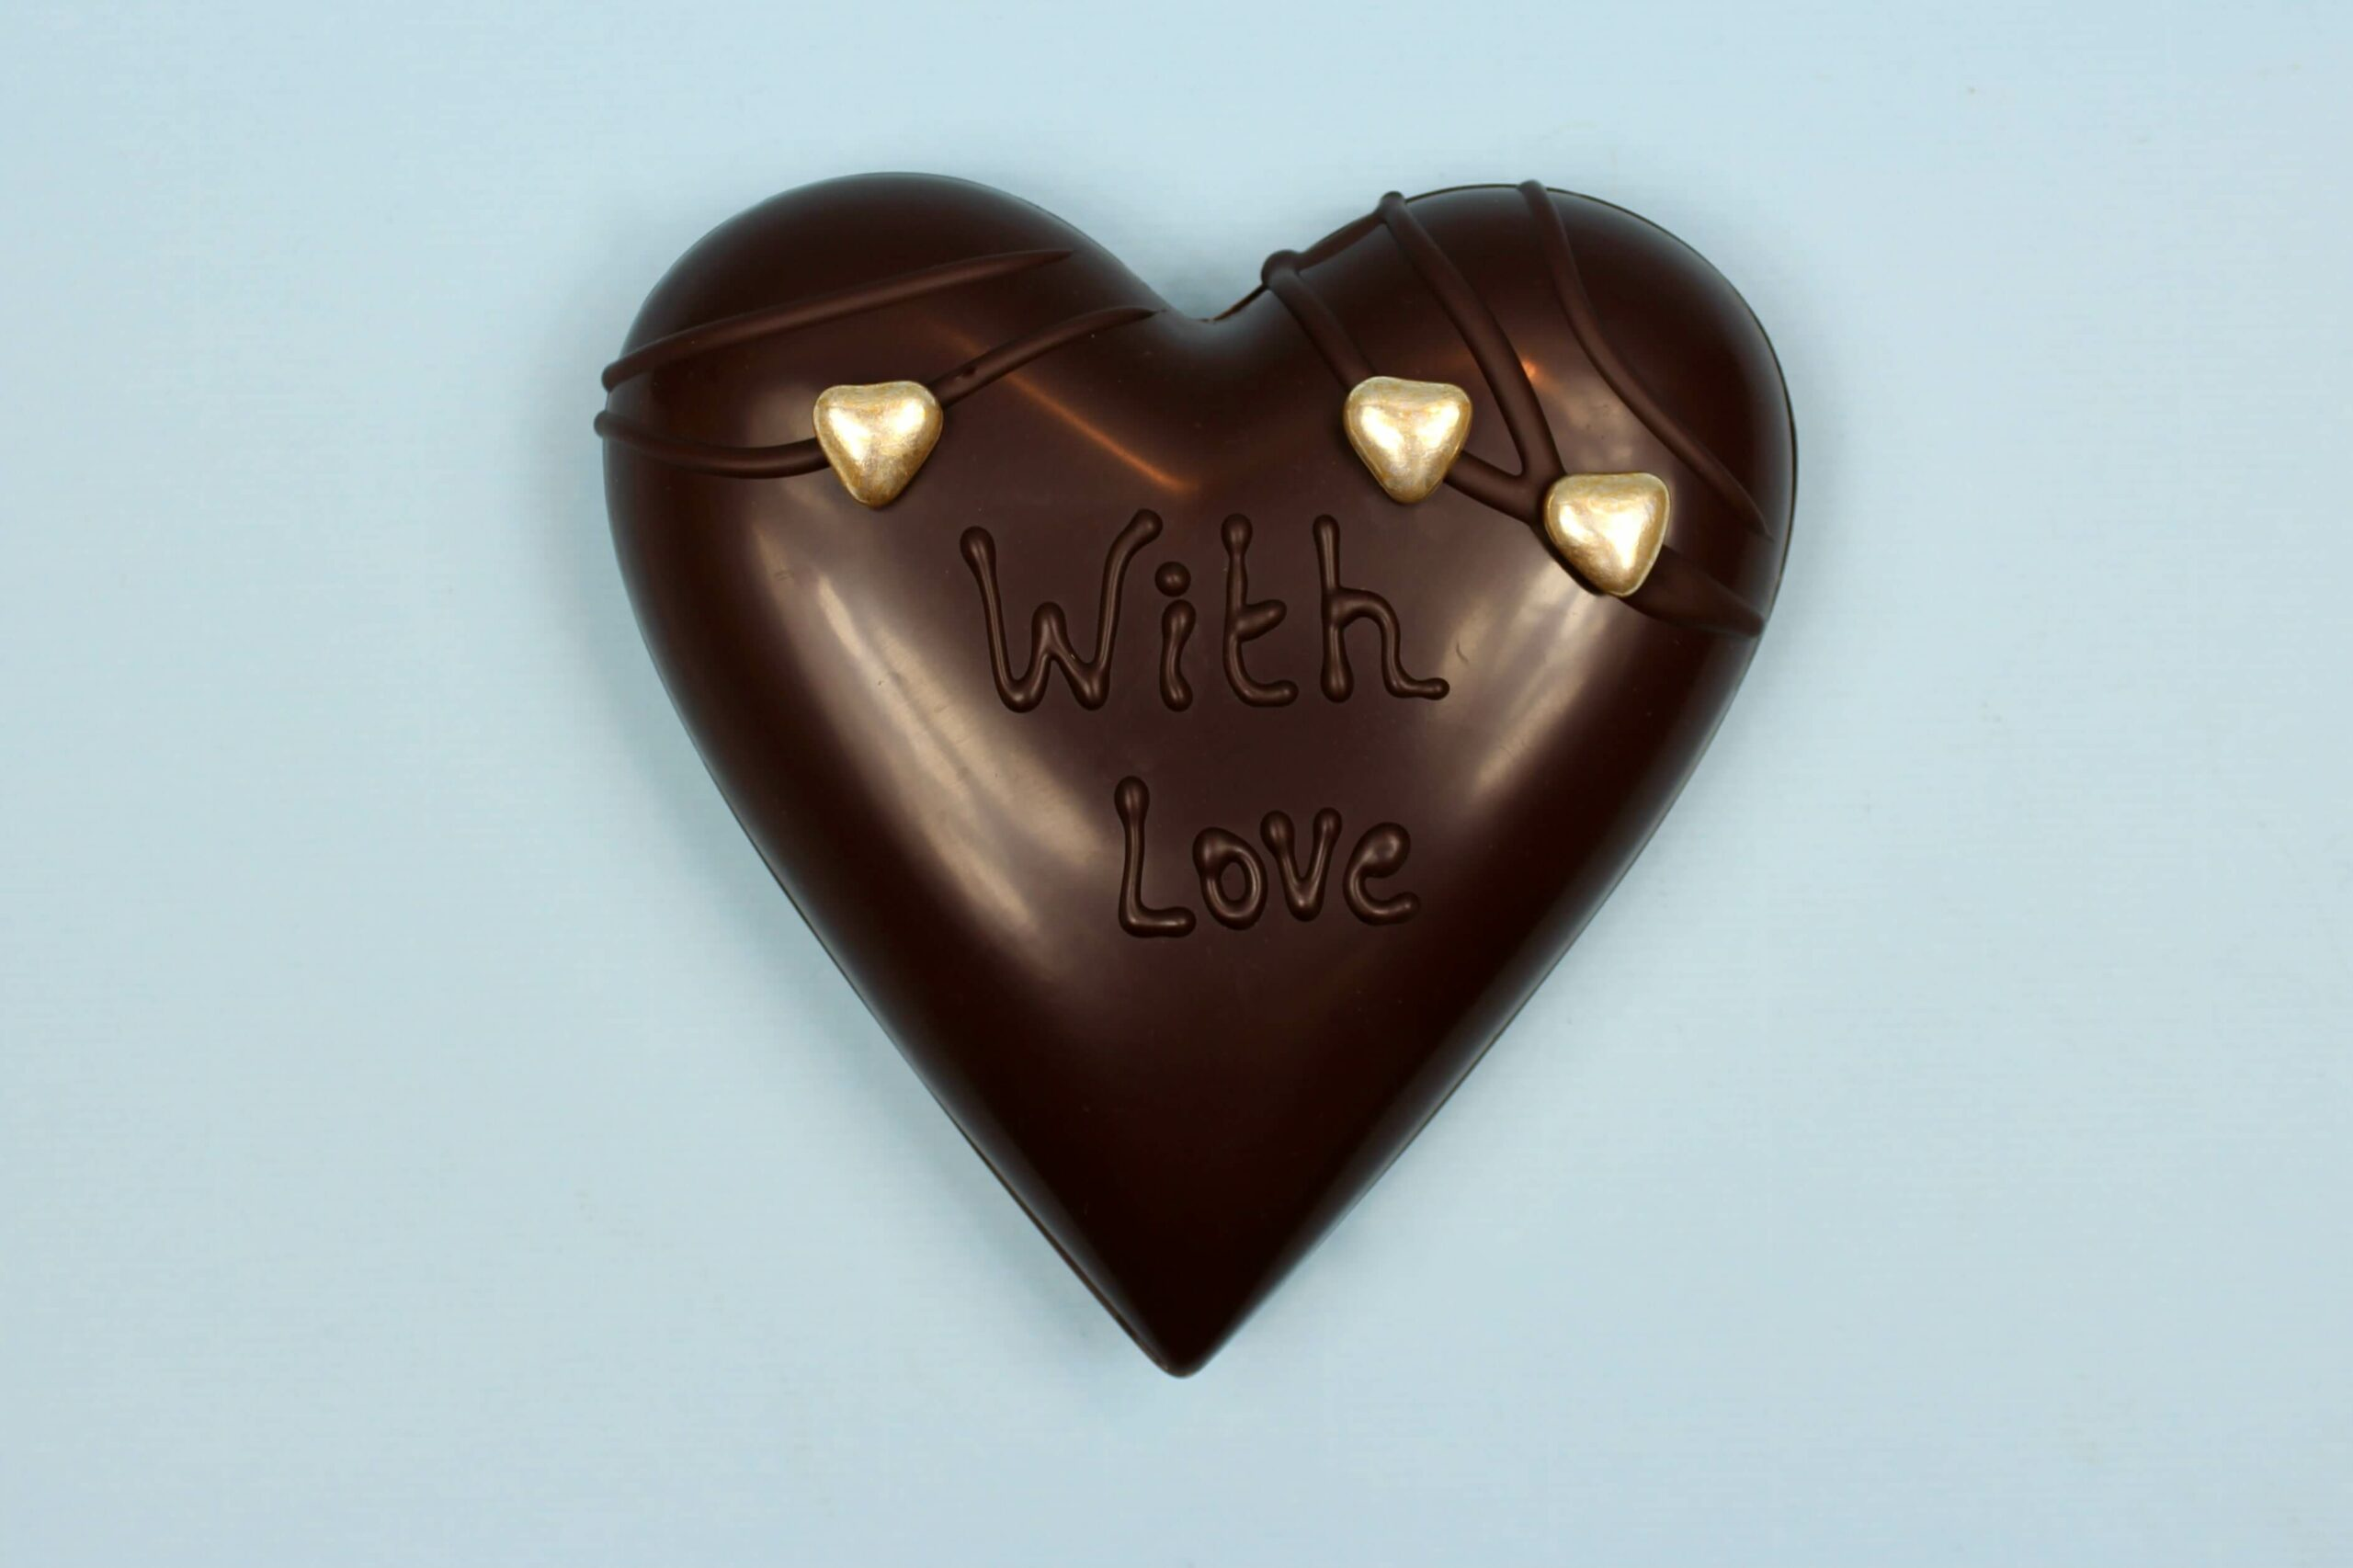 hd ghent matroeska heart dark chocolate valentine 2021 set of tree one and two in tree closed